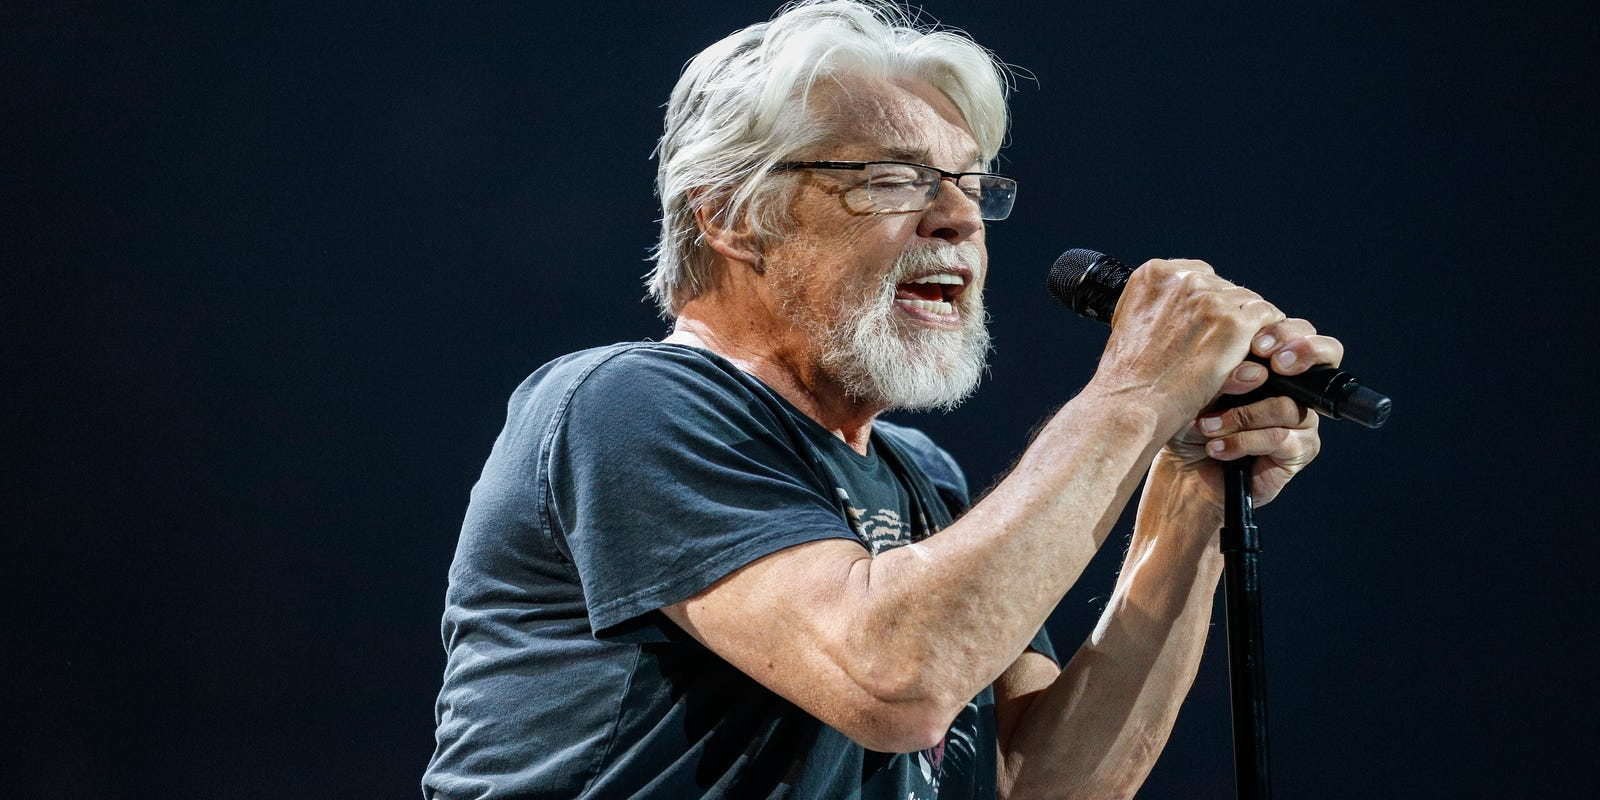 Bob Seger says his touring days are likely finished following Alto Reed's death